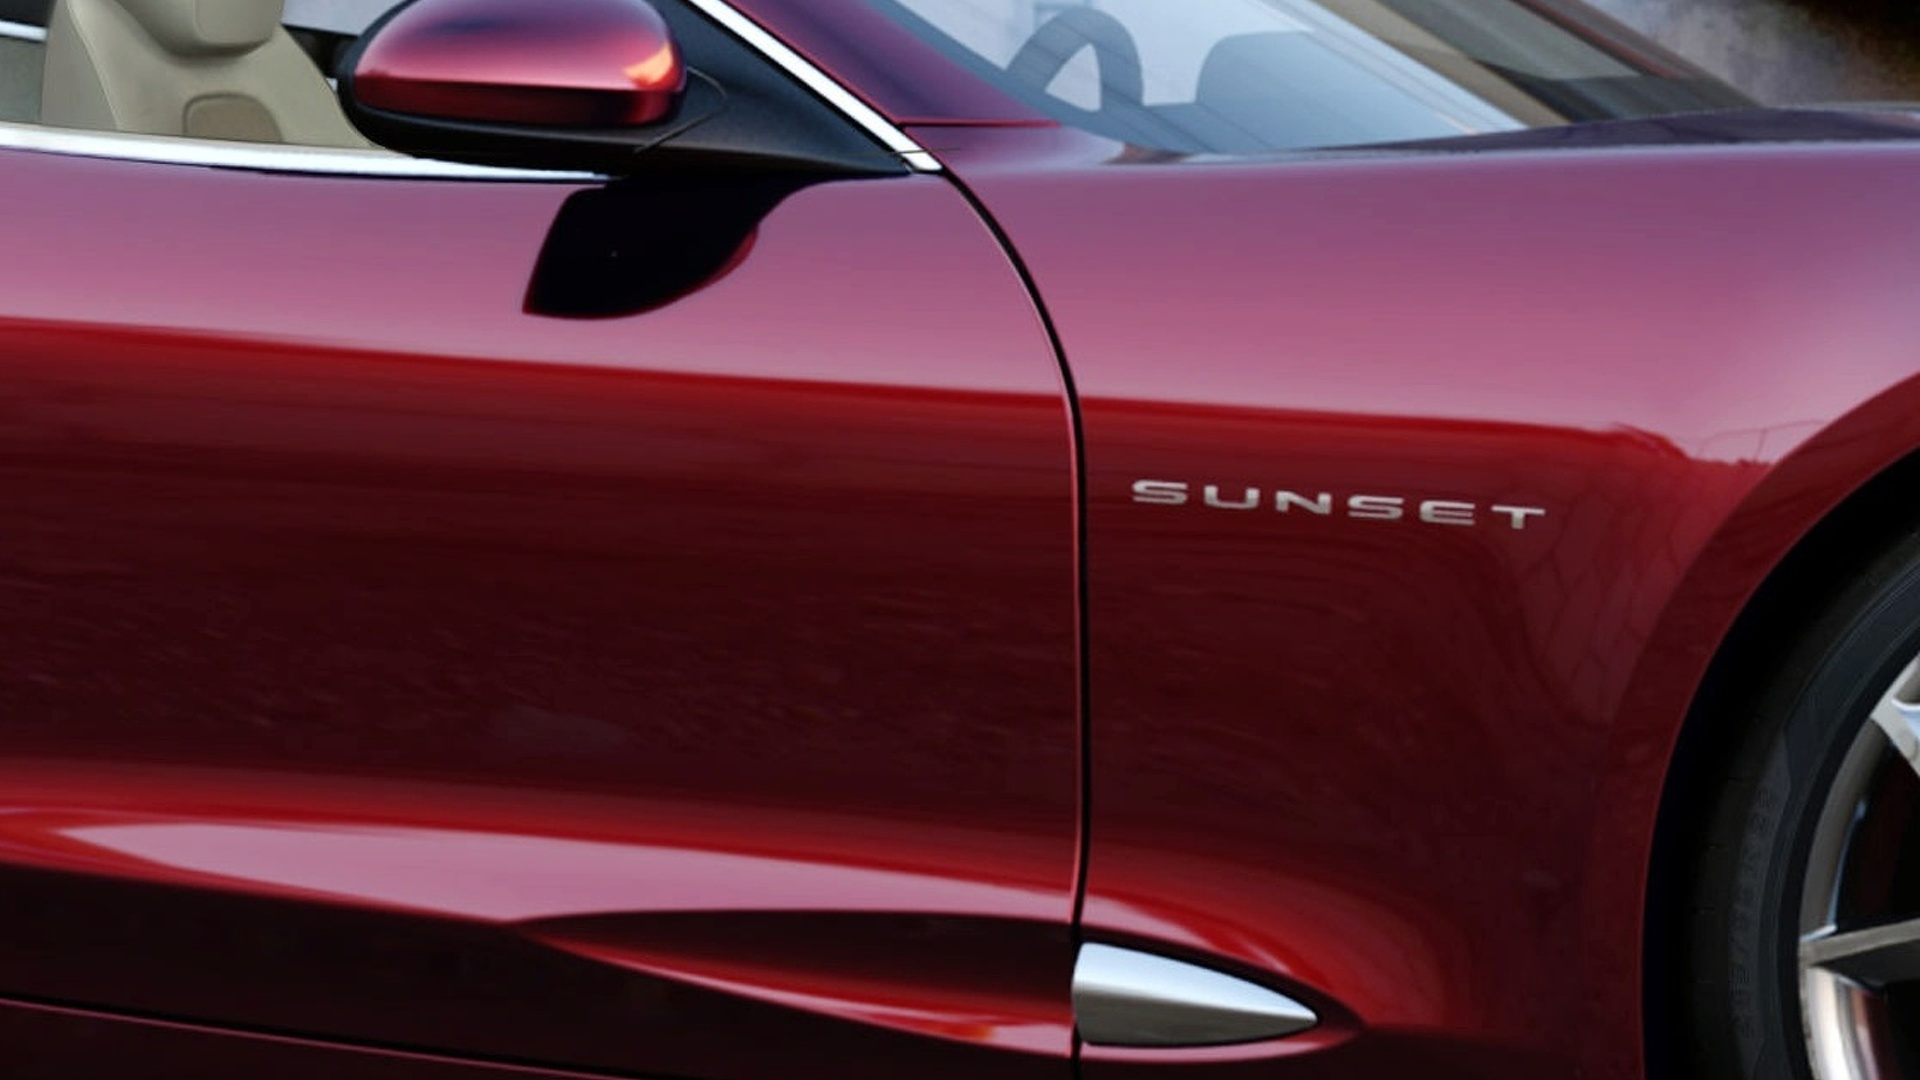 Fisker Karma S 'Sunset' Convertible Concept Teaser for Detroit Premiere